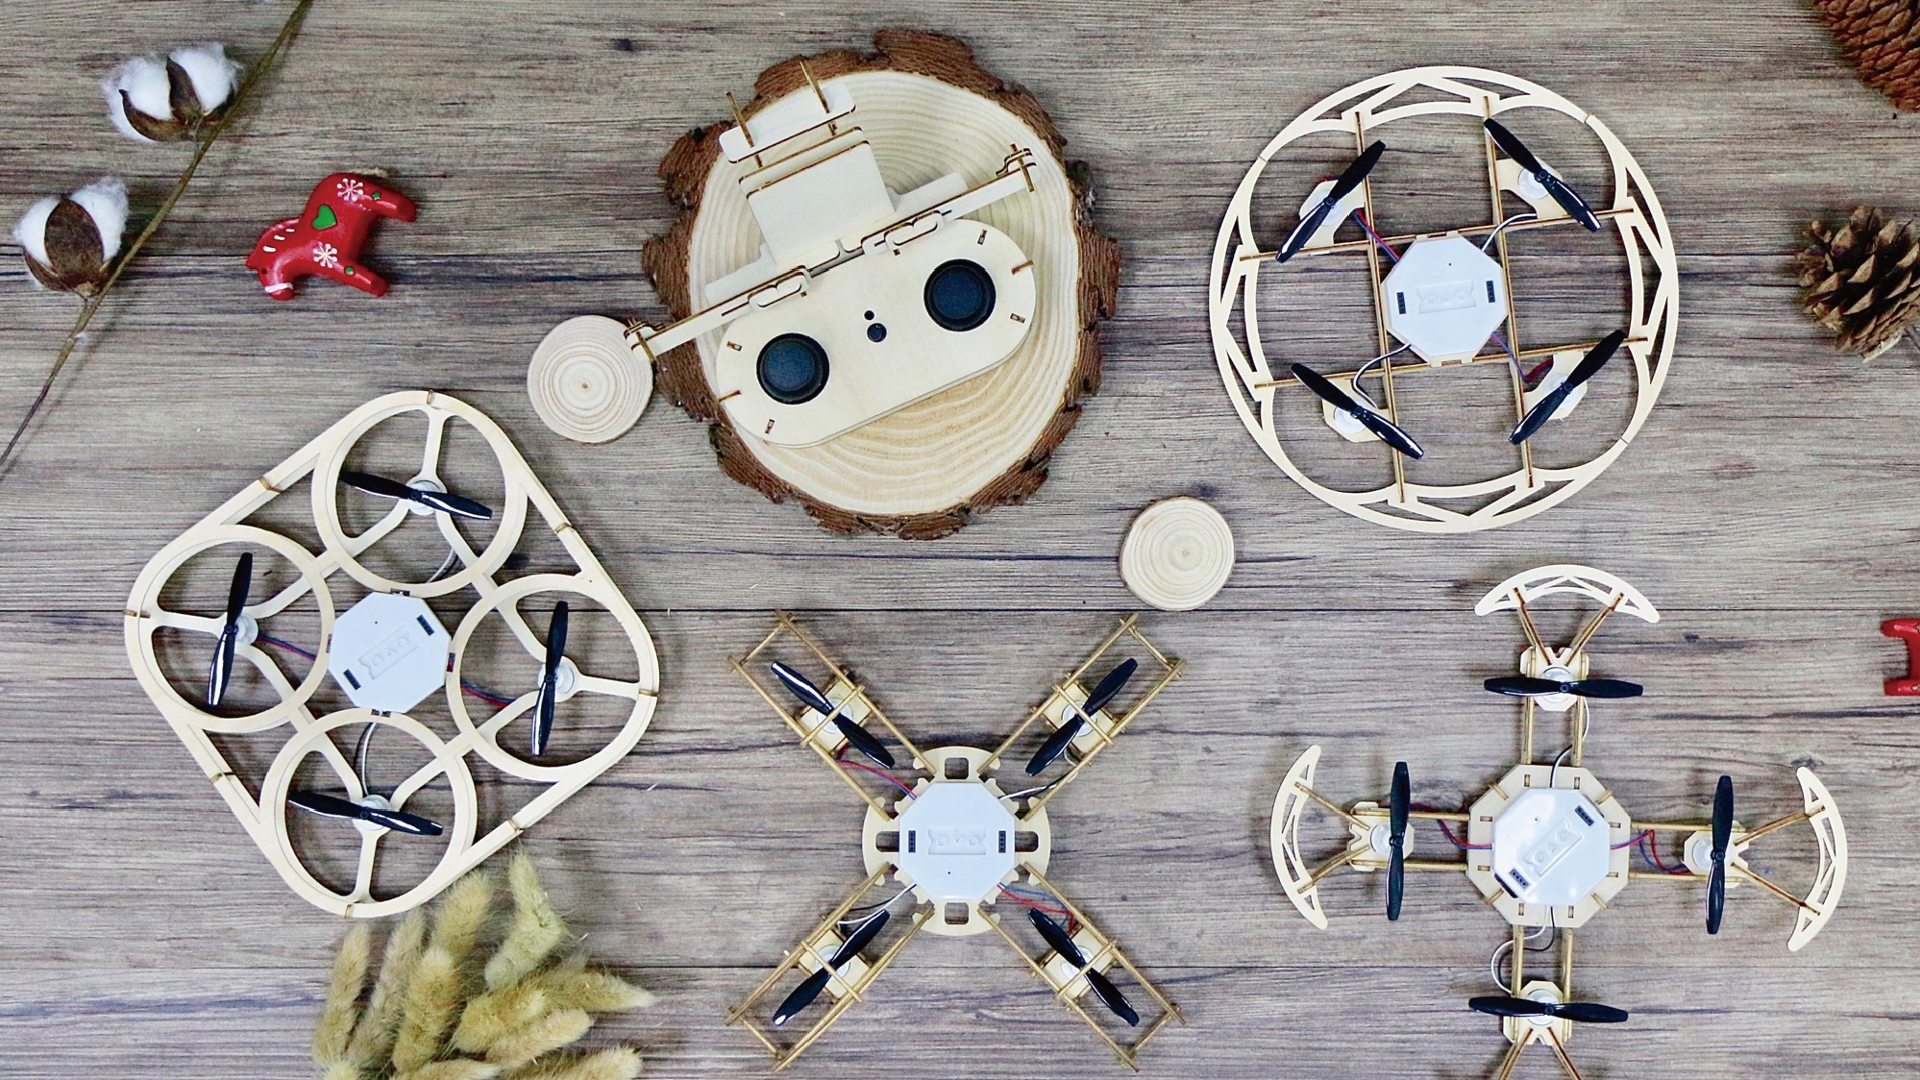 WOOD DRONE